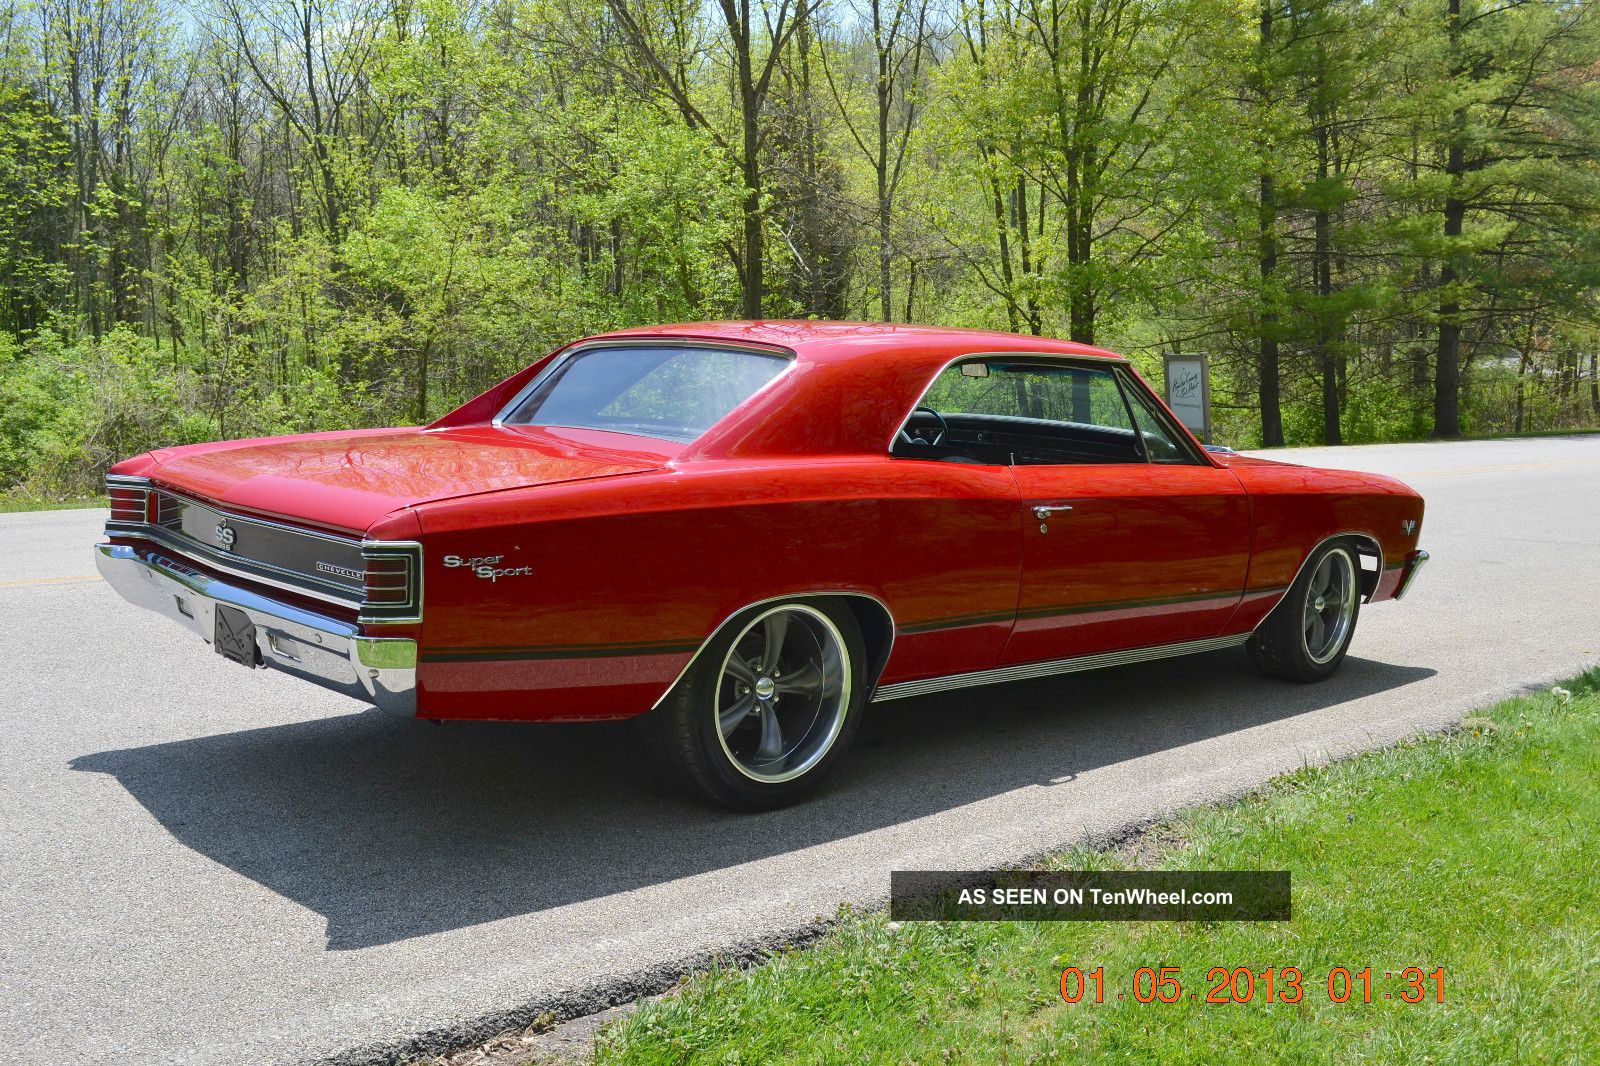 1967 Chevelle Ss Pro Touring Look Strong 406 Condition Awesome Stance Plymouth Fury Engine Diagram